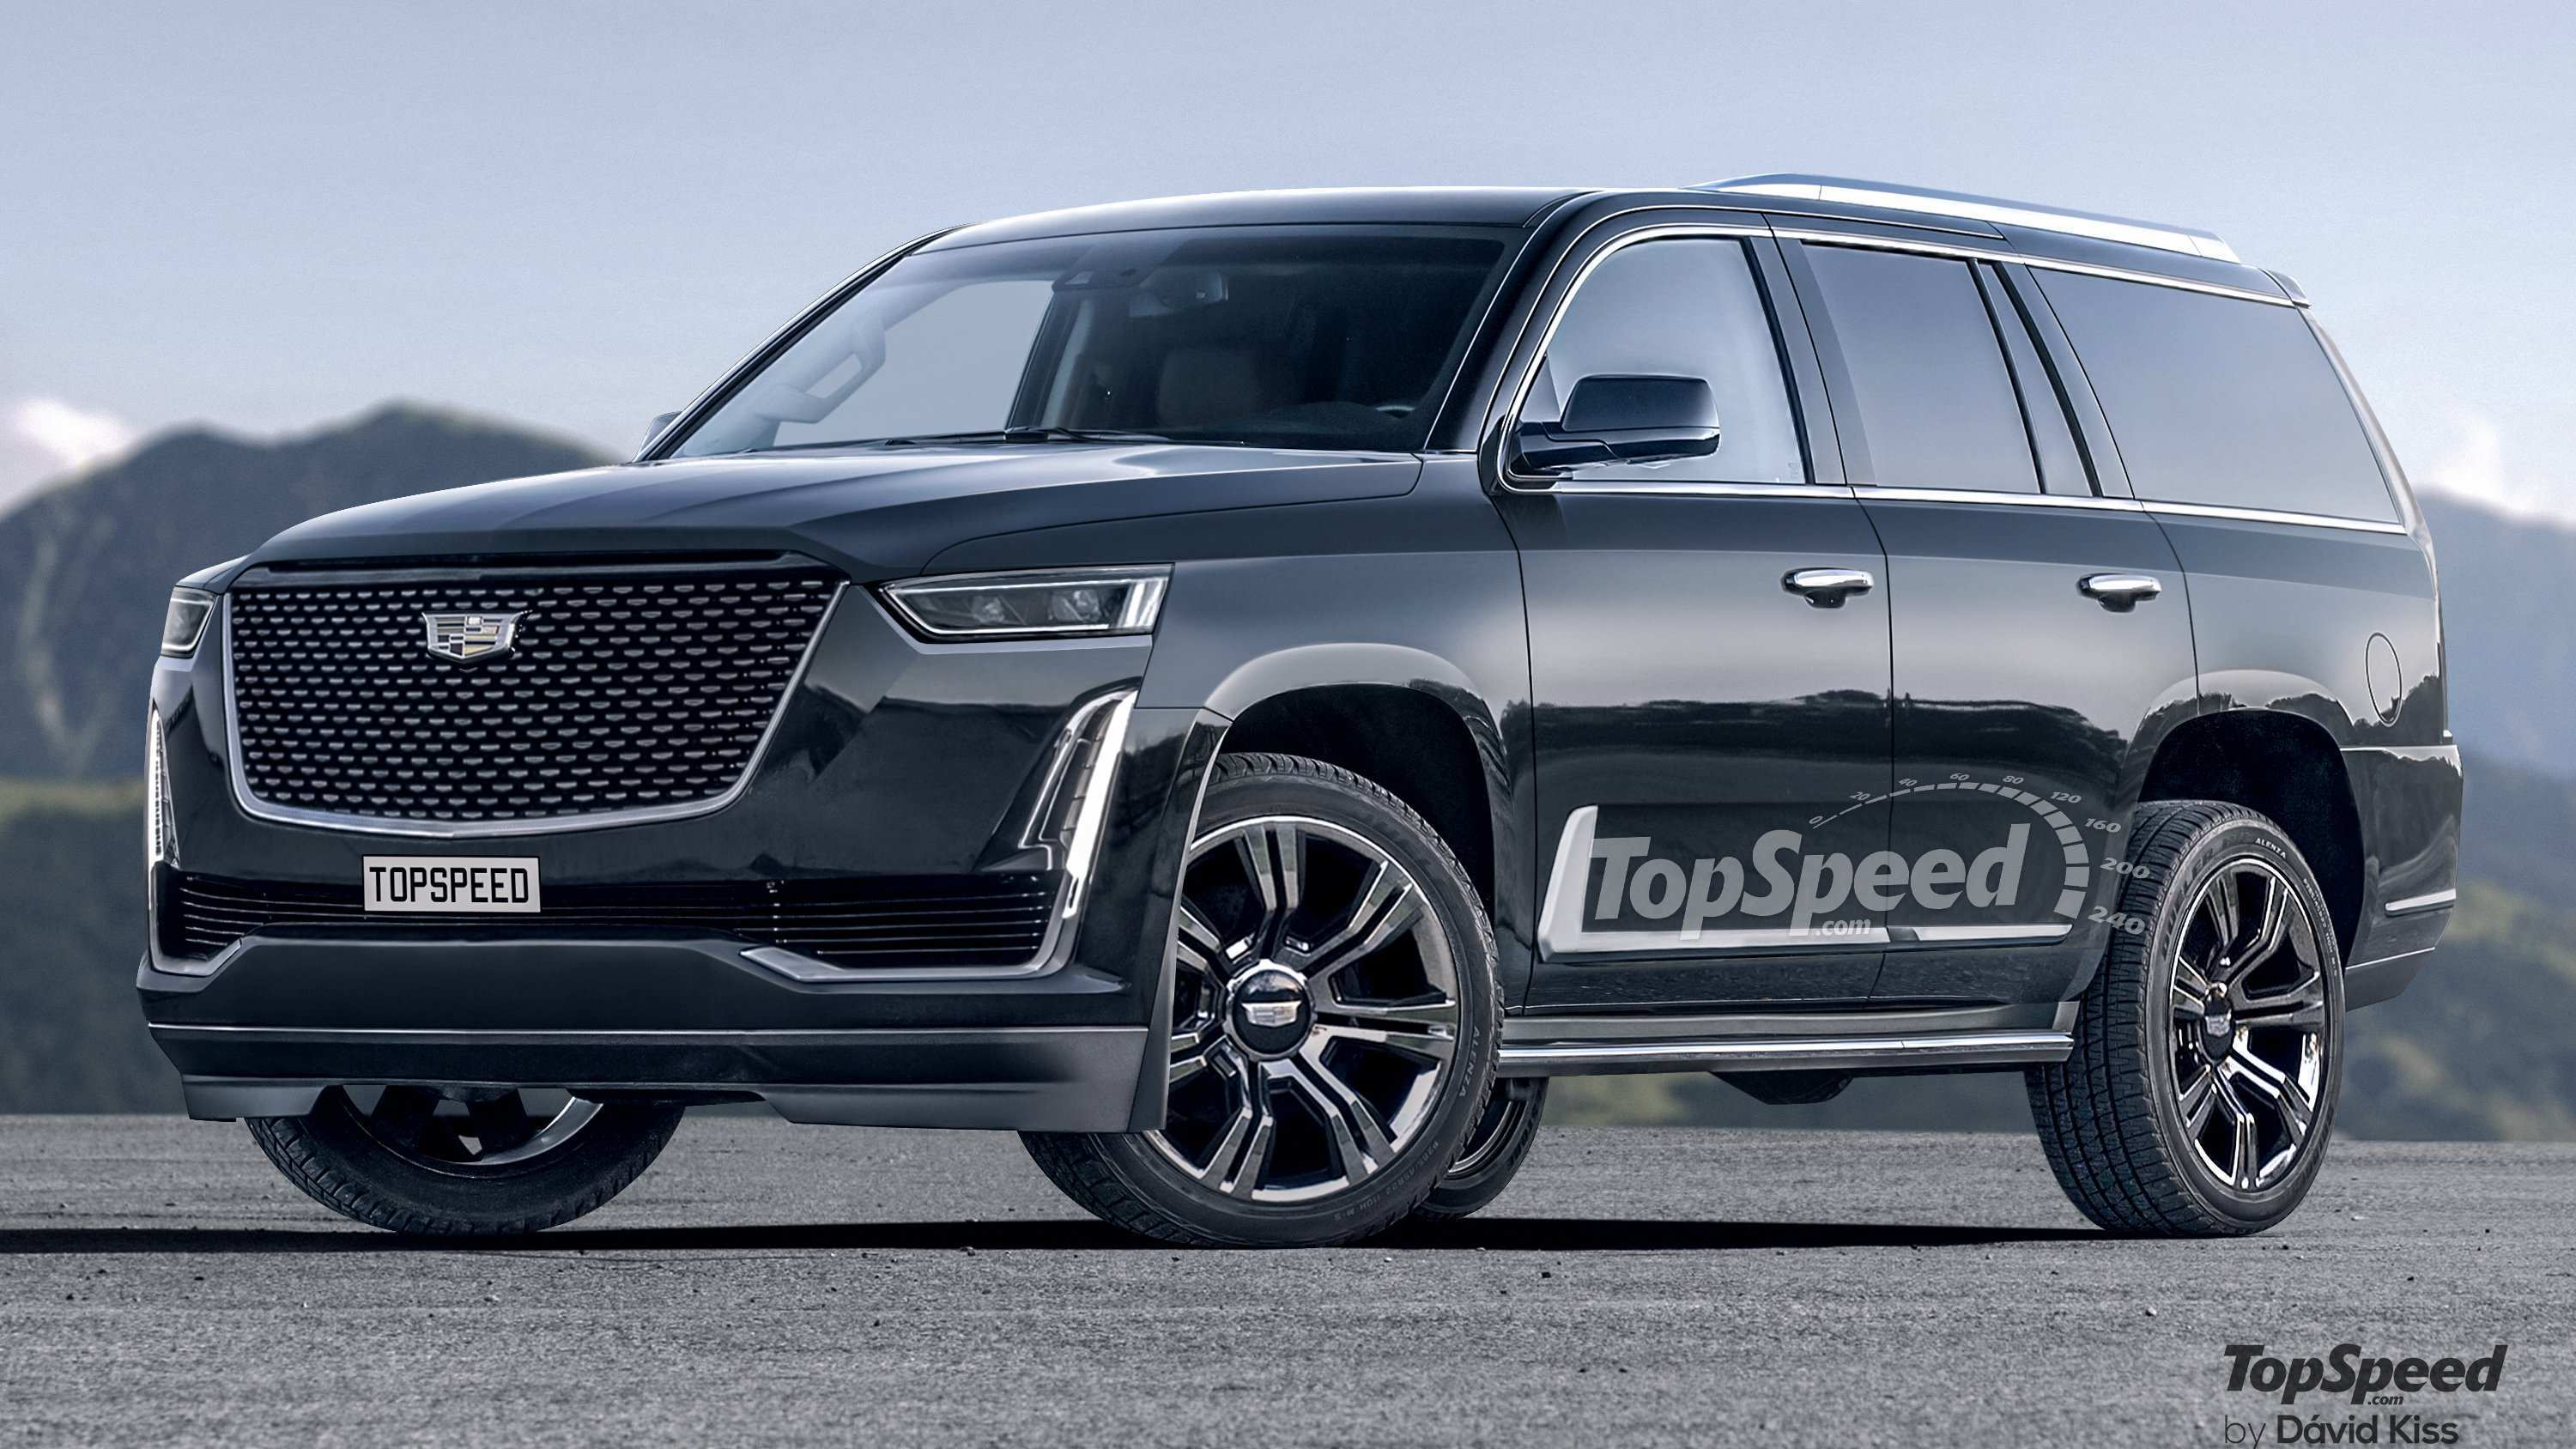 38 A 2020 Cadillac Escalade Wallpaper